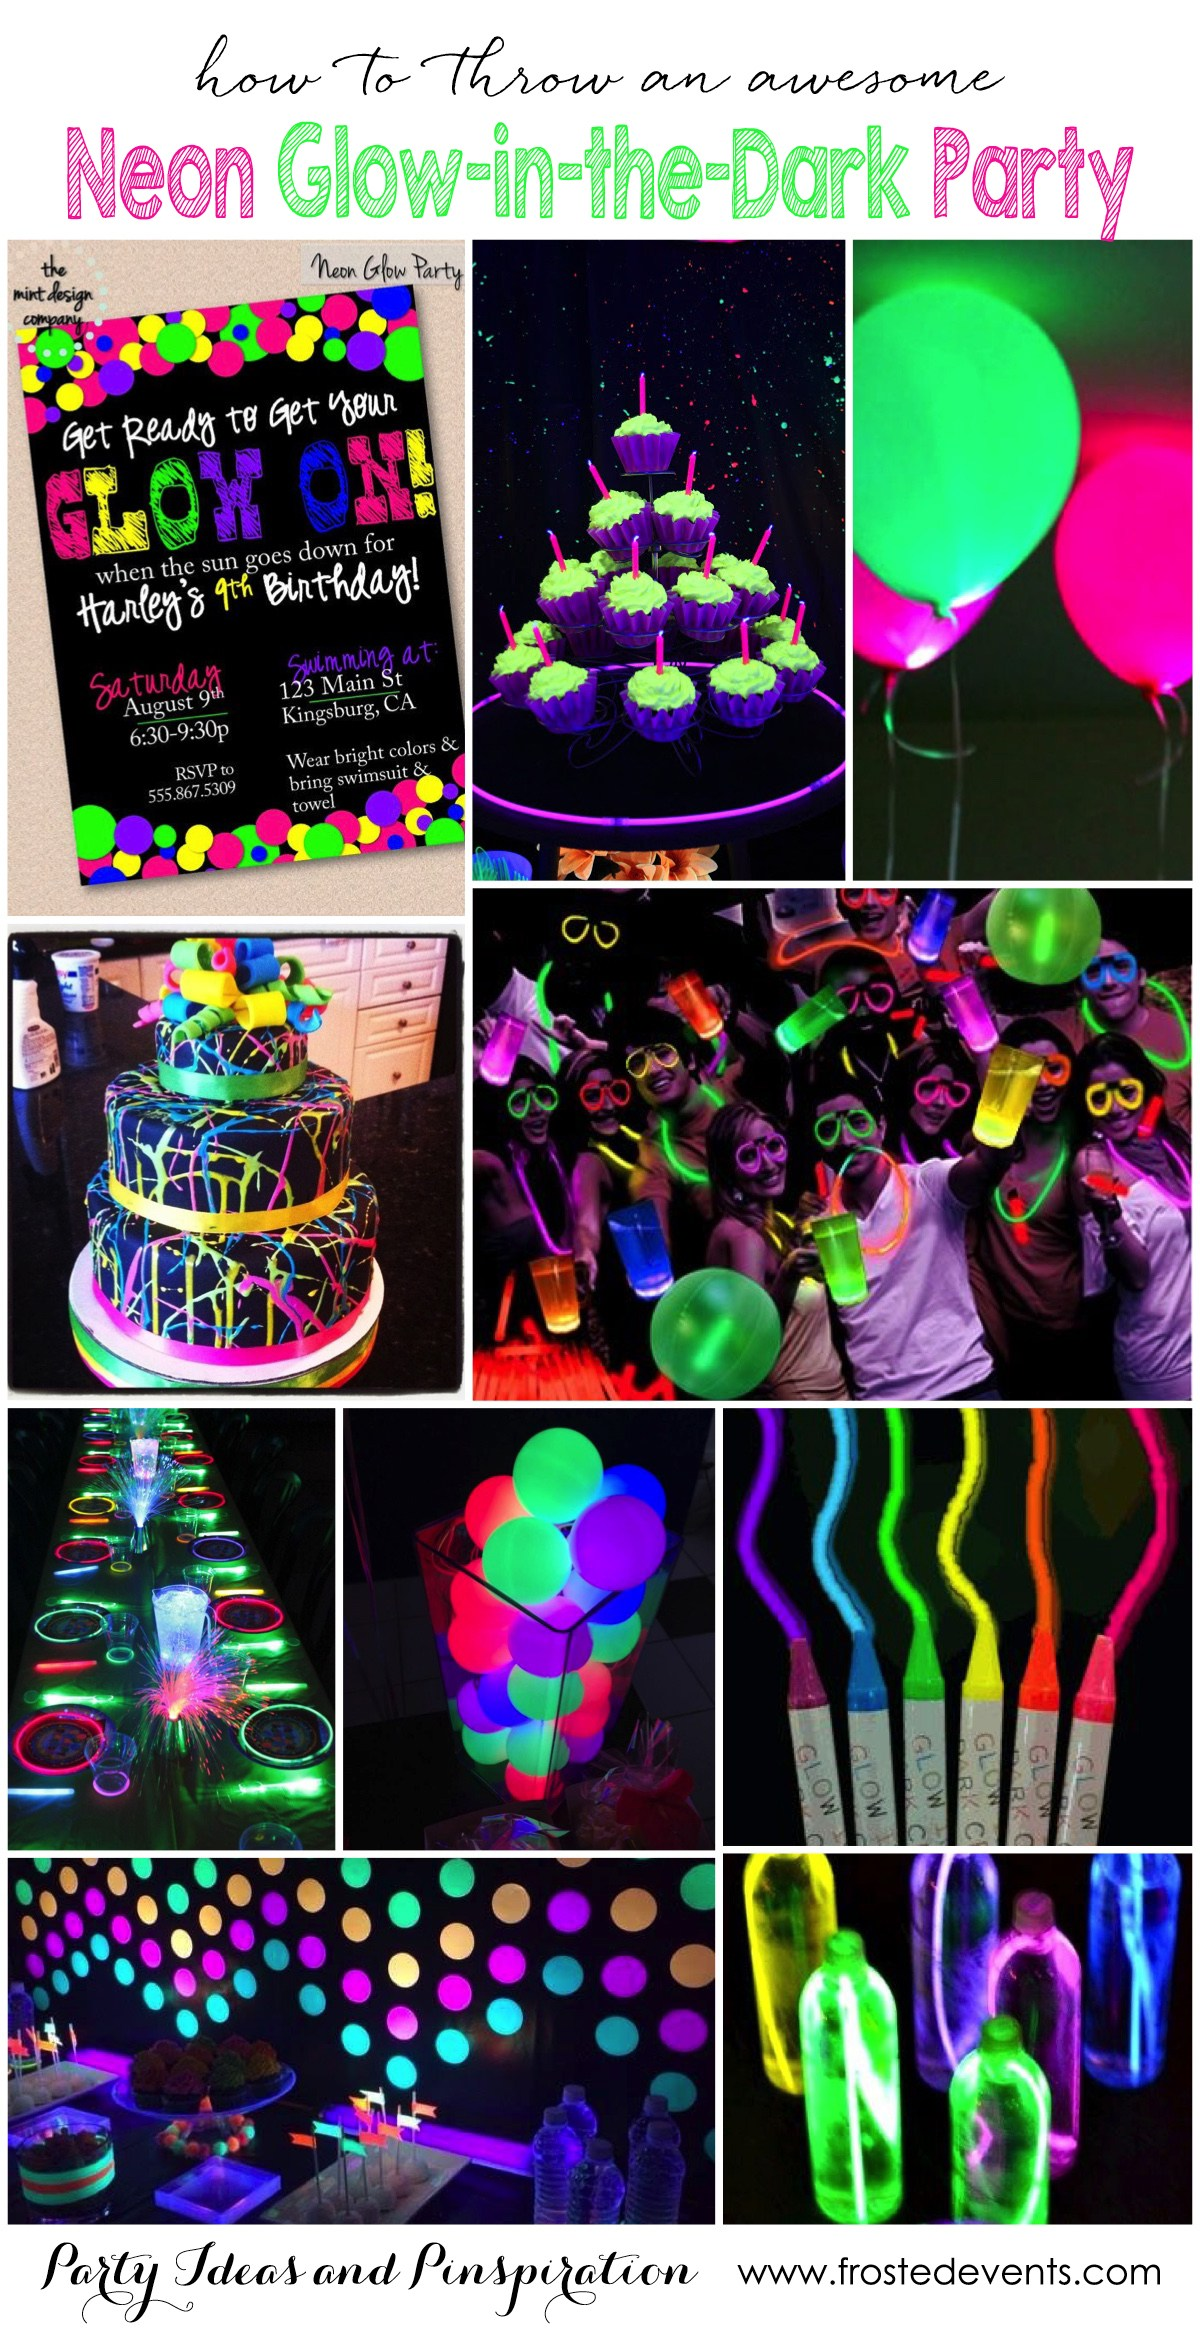 The fun teen birthday party like this